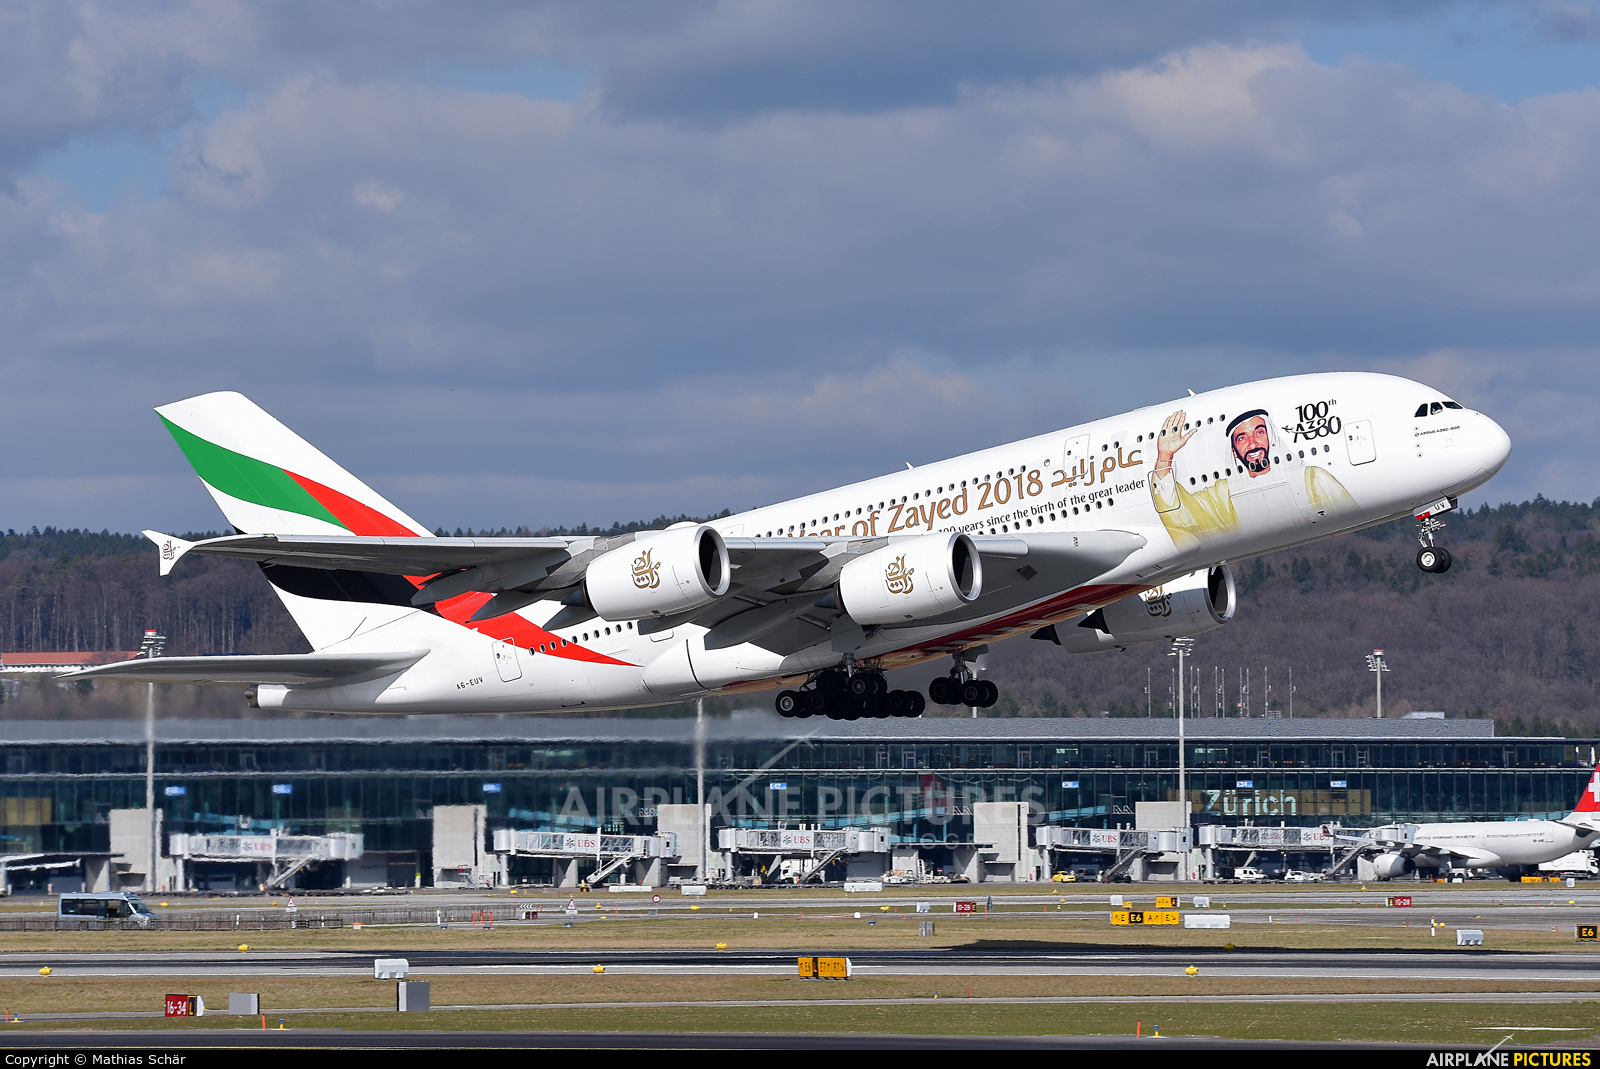 Emirates Airlines A6-EUV aircraft at Zurich